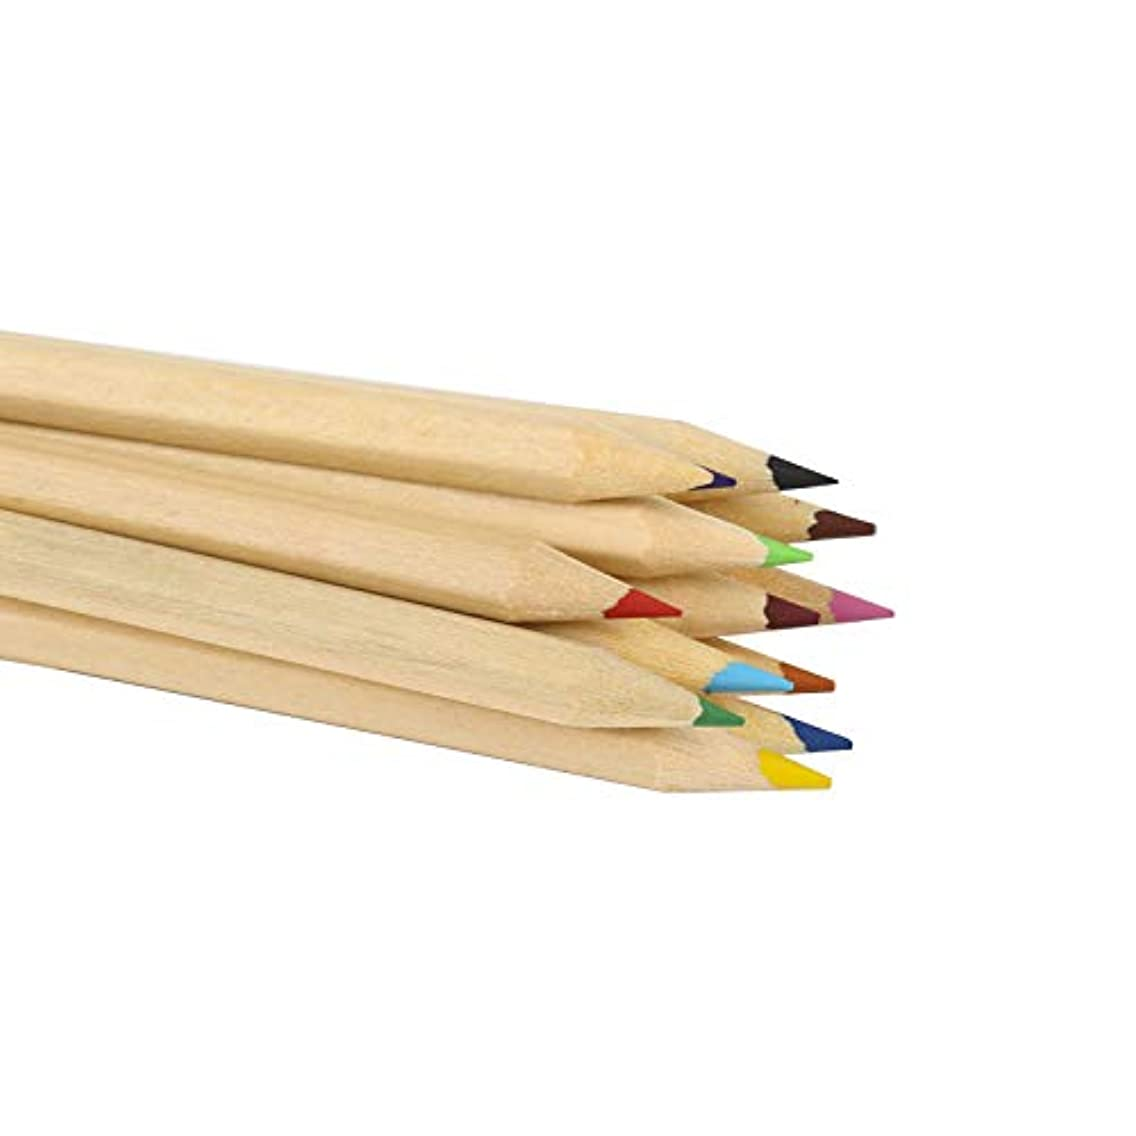 TENPEN -12-Color Colored Pencils Set for Adults and Kids/Vibrant Colors,Drawing Pencils for Sketch, Arts, Coloring Books (Cylinder)